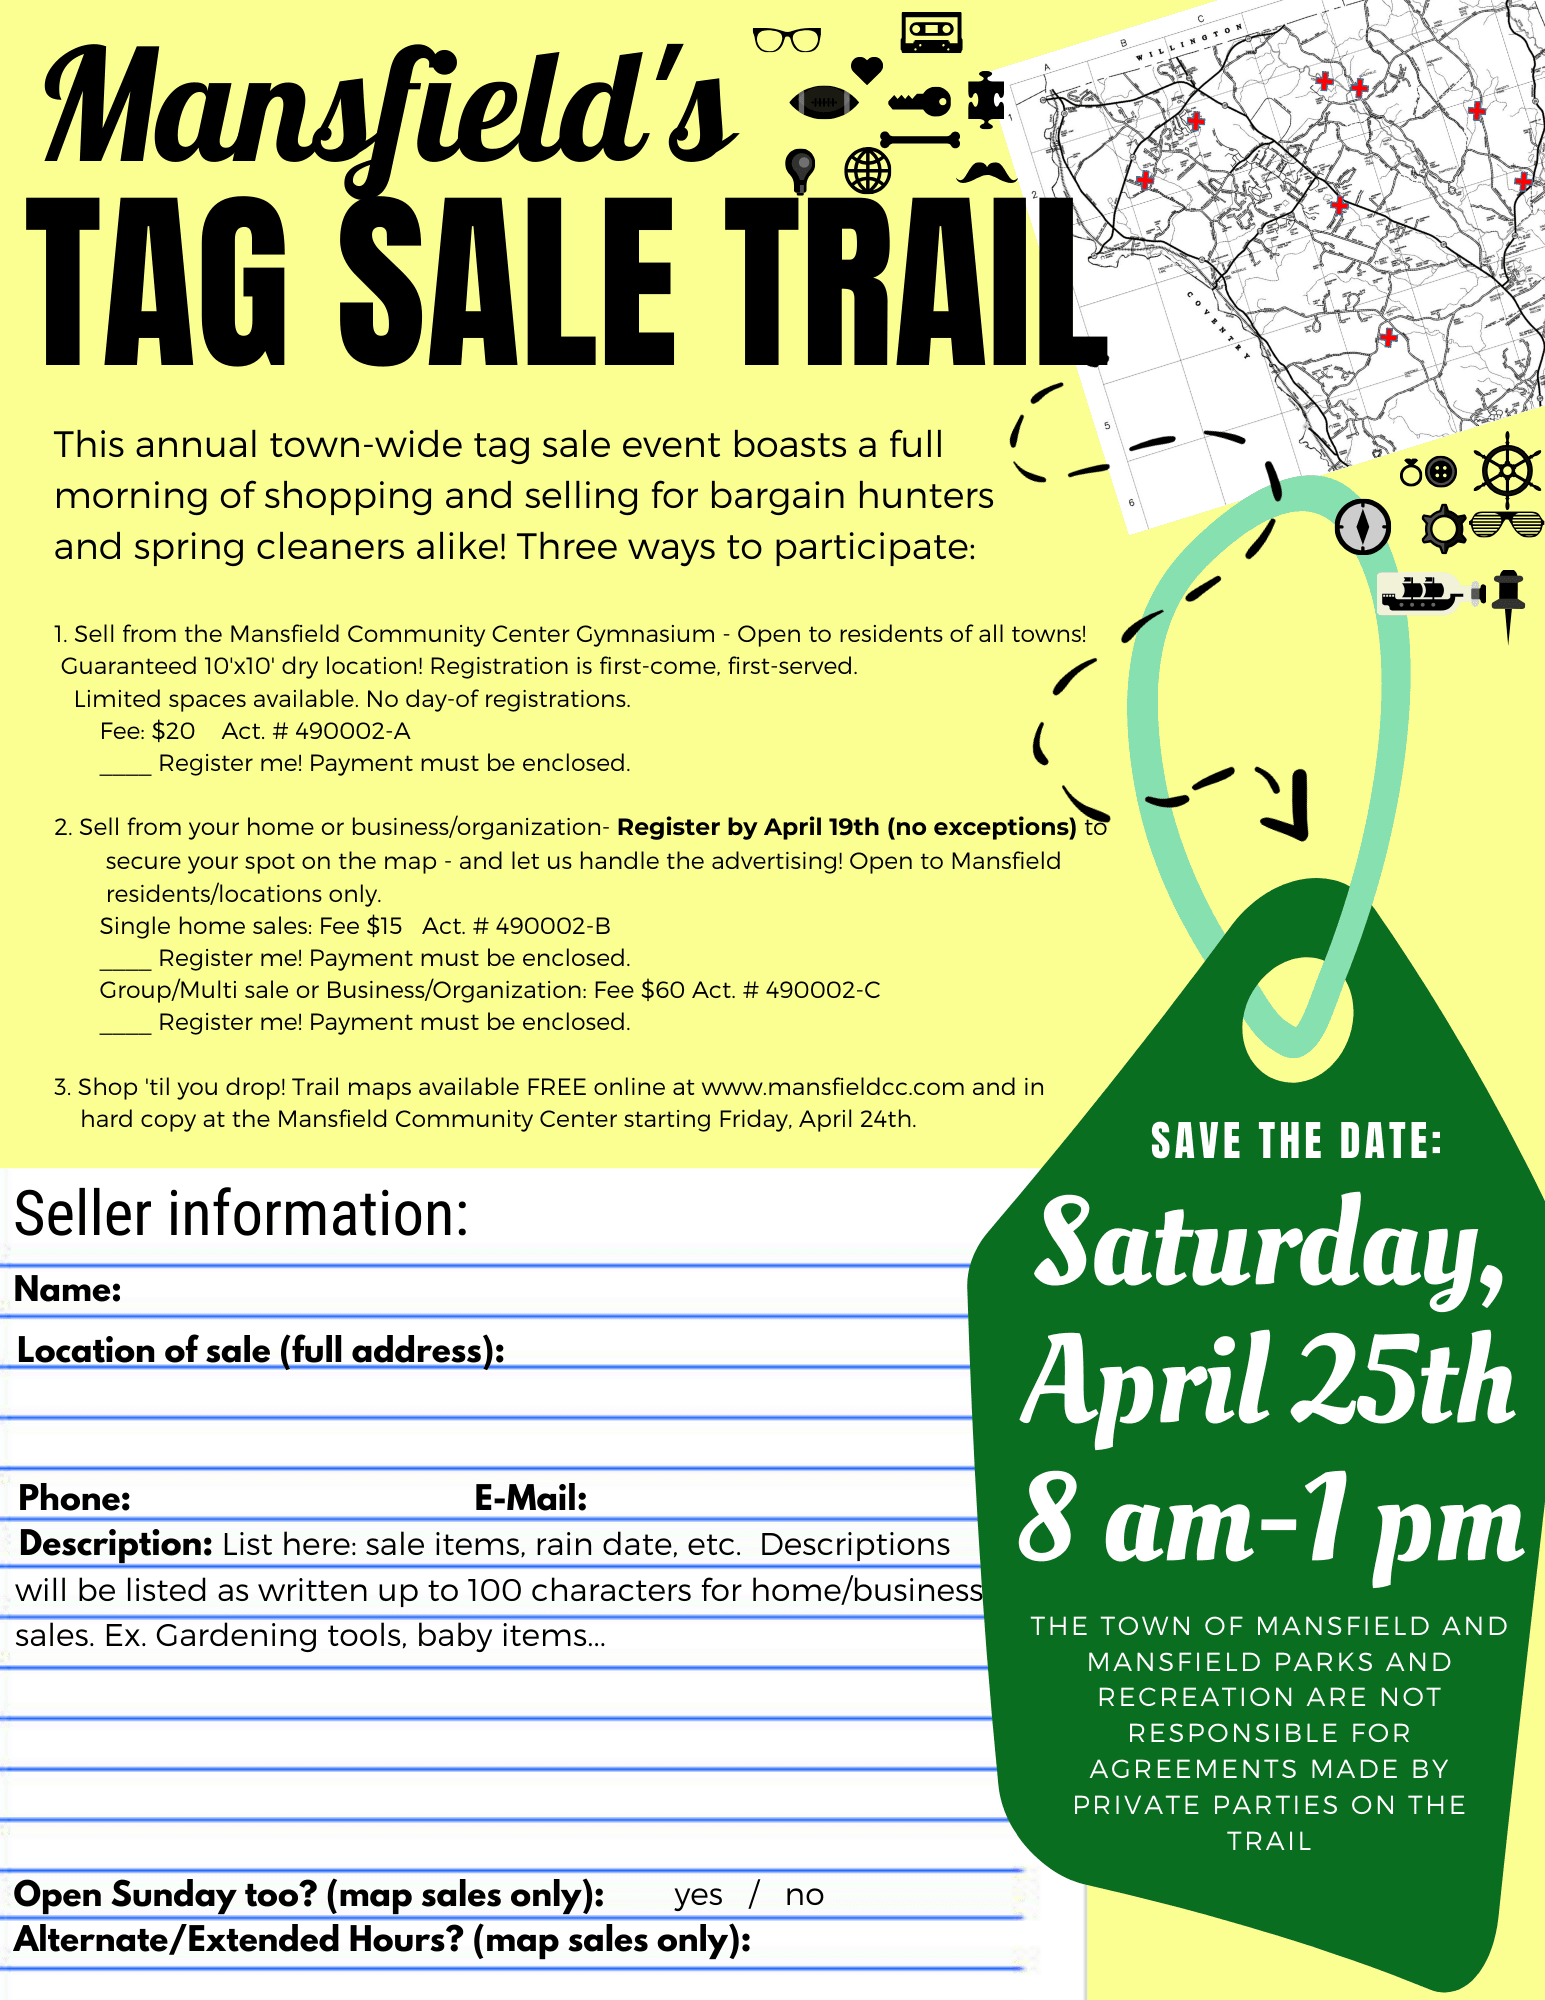 Mansfield's Tag Sale Trail!